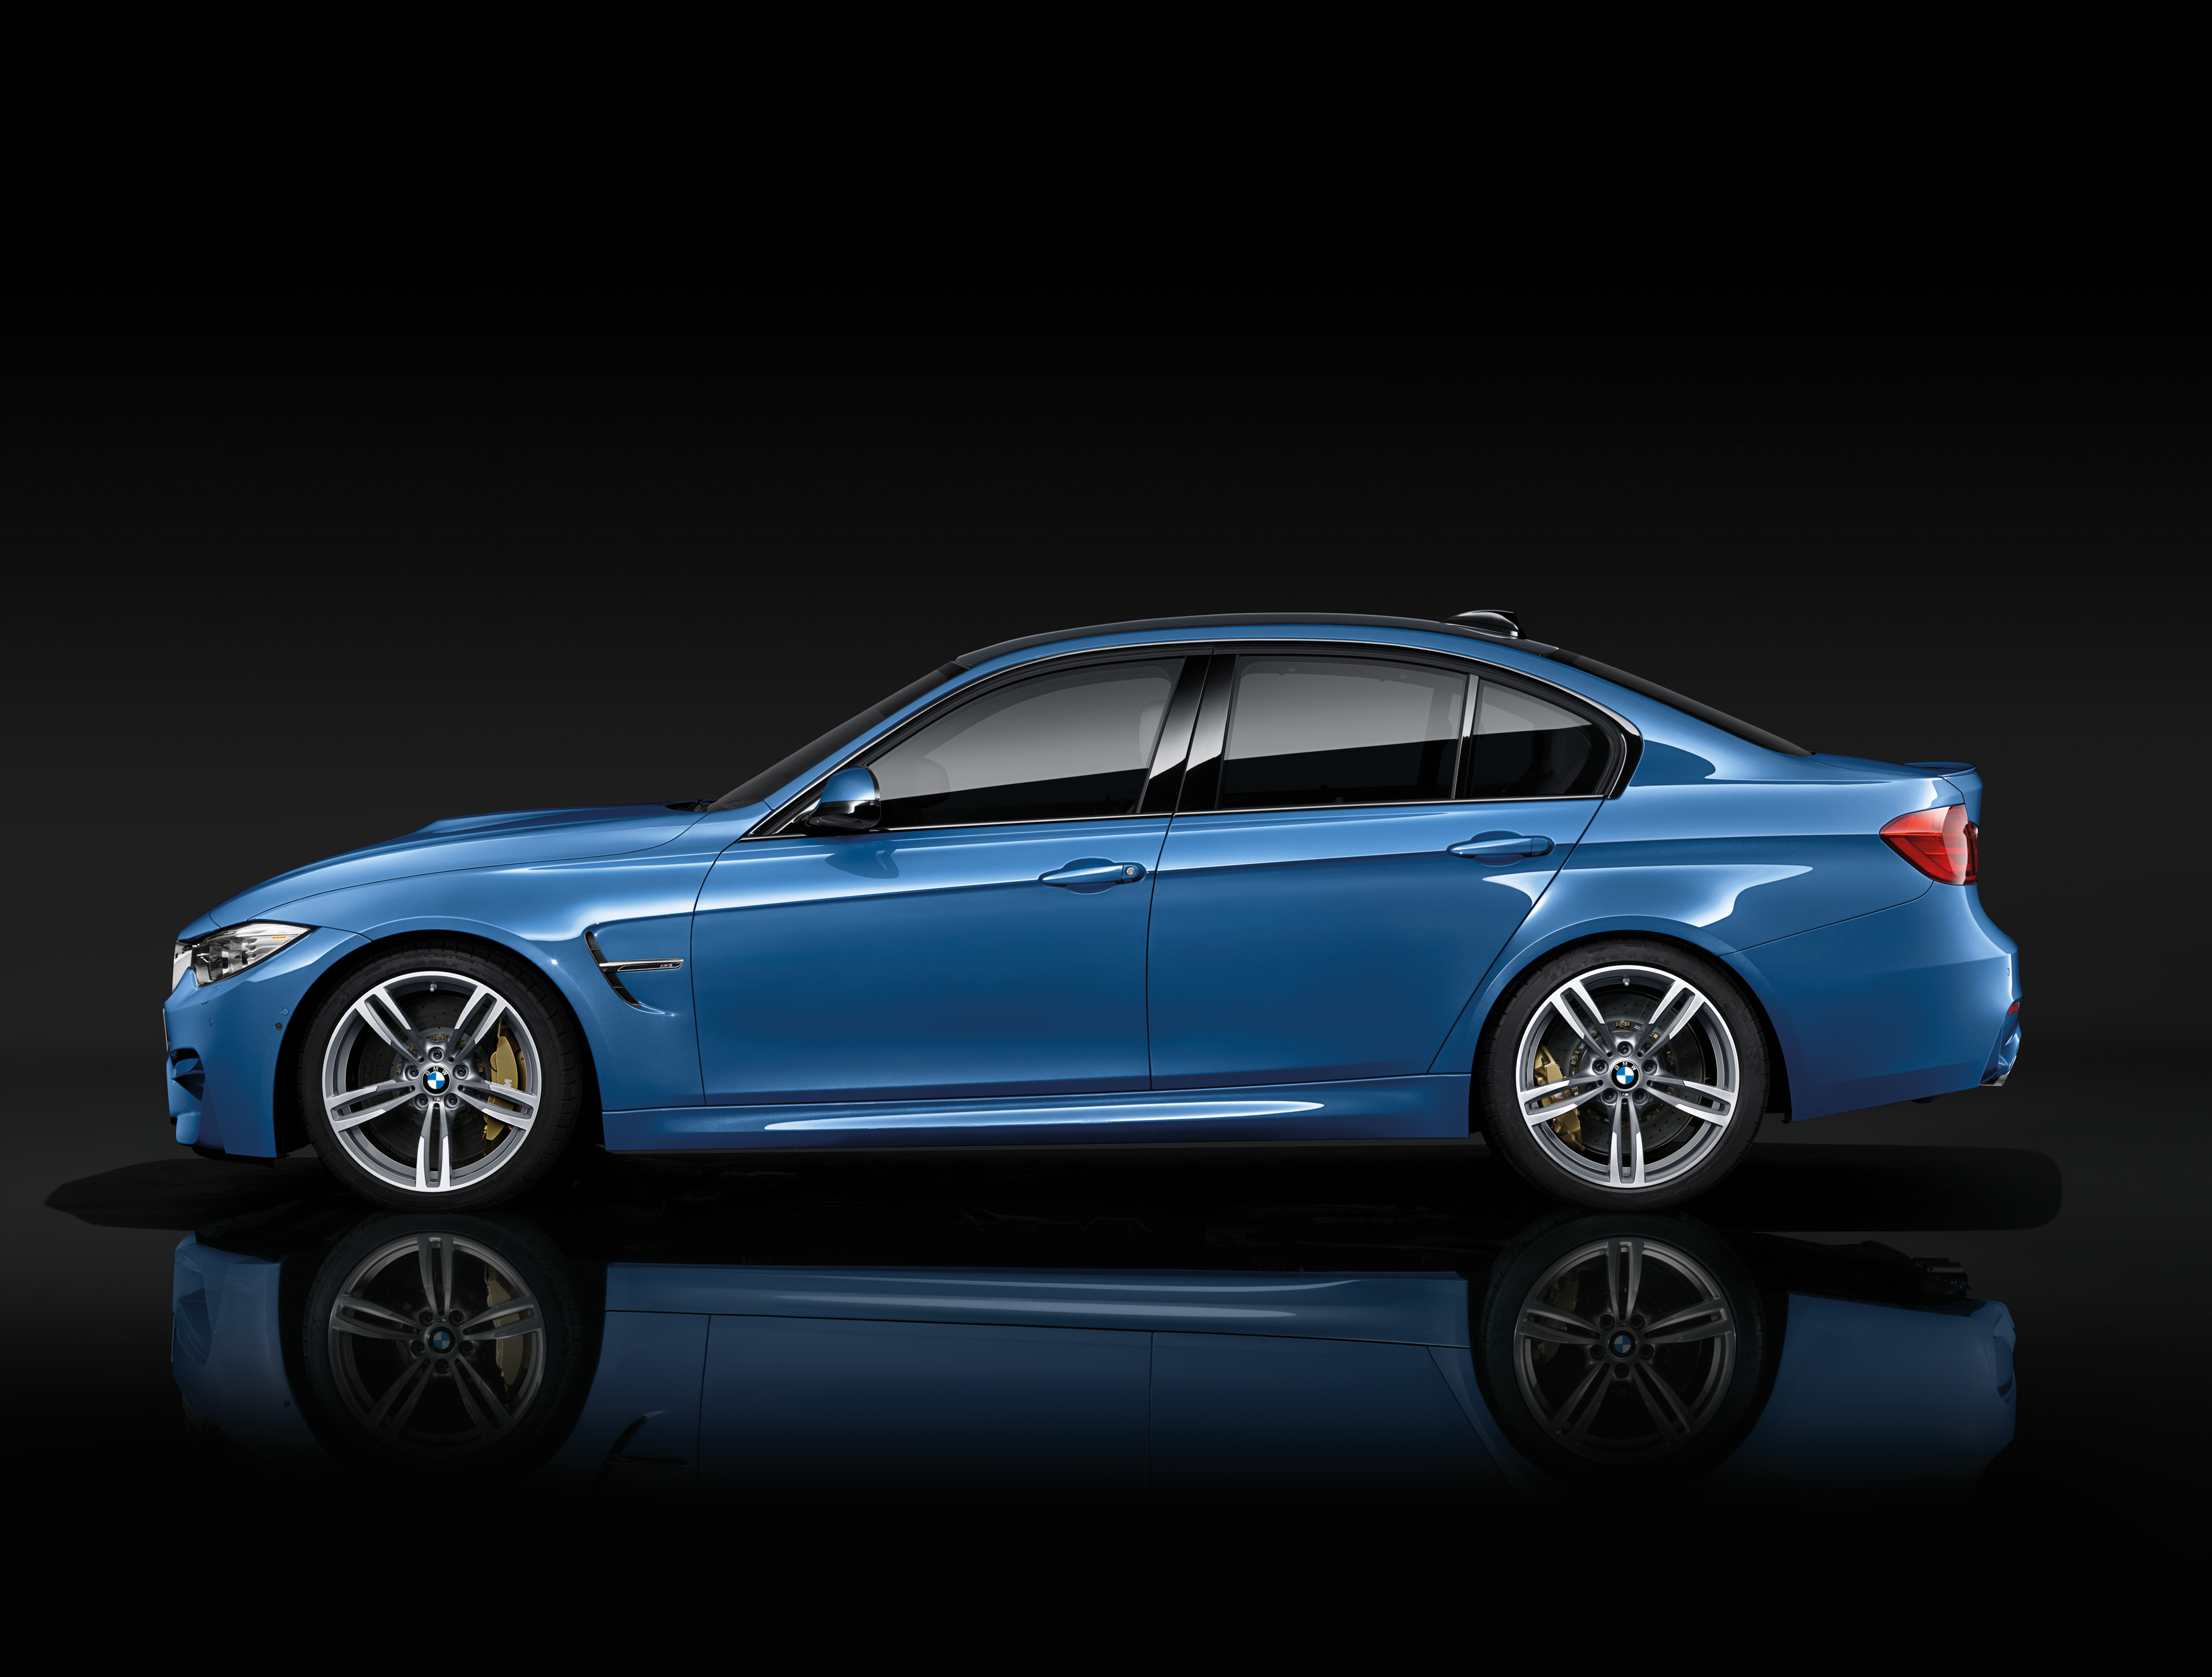 2015 BMW M3 Sedan Stills - (5) - SMADEMEDIA.COM Galleria